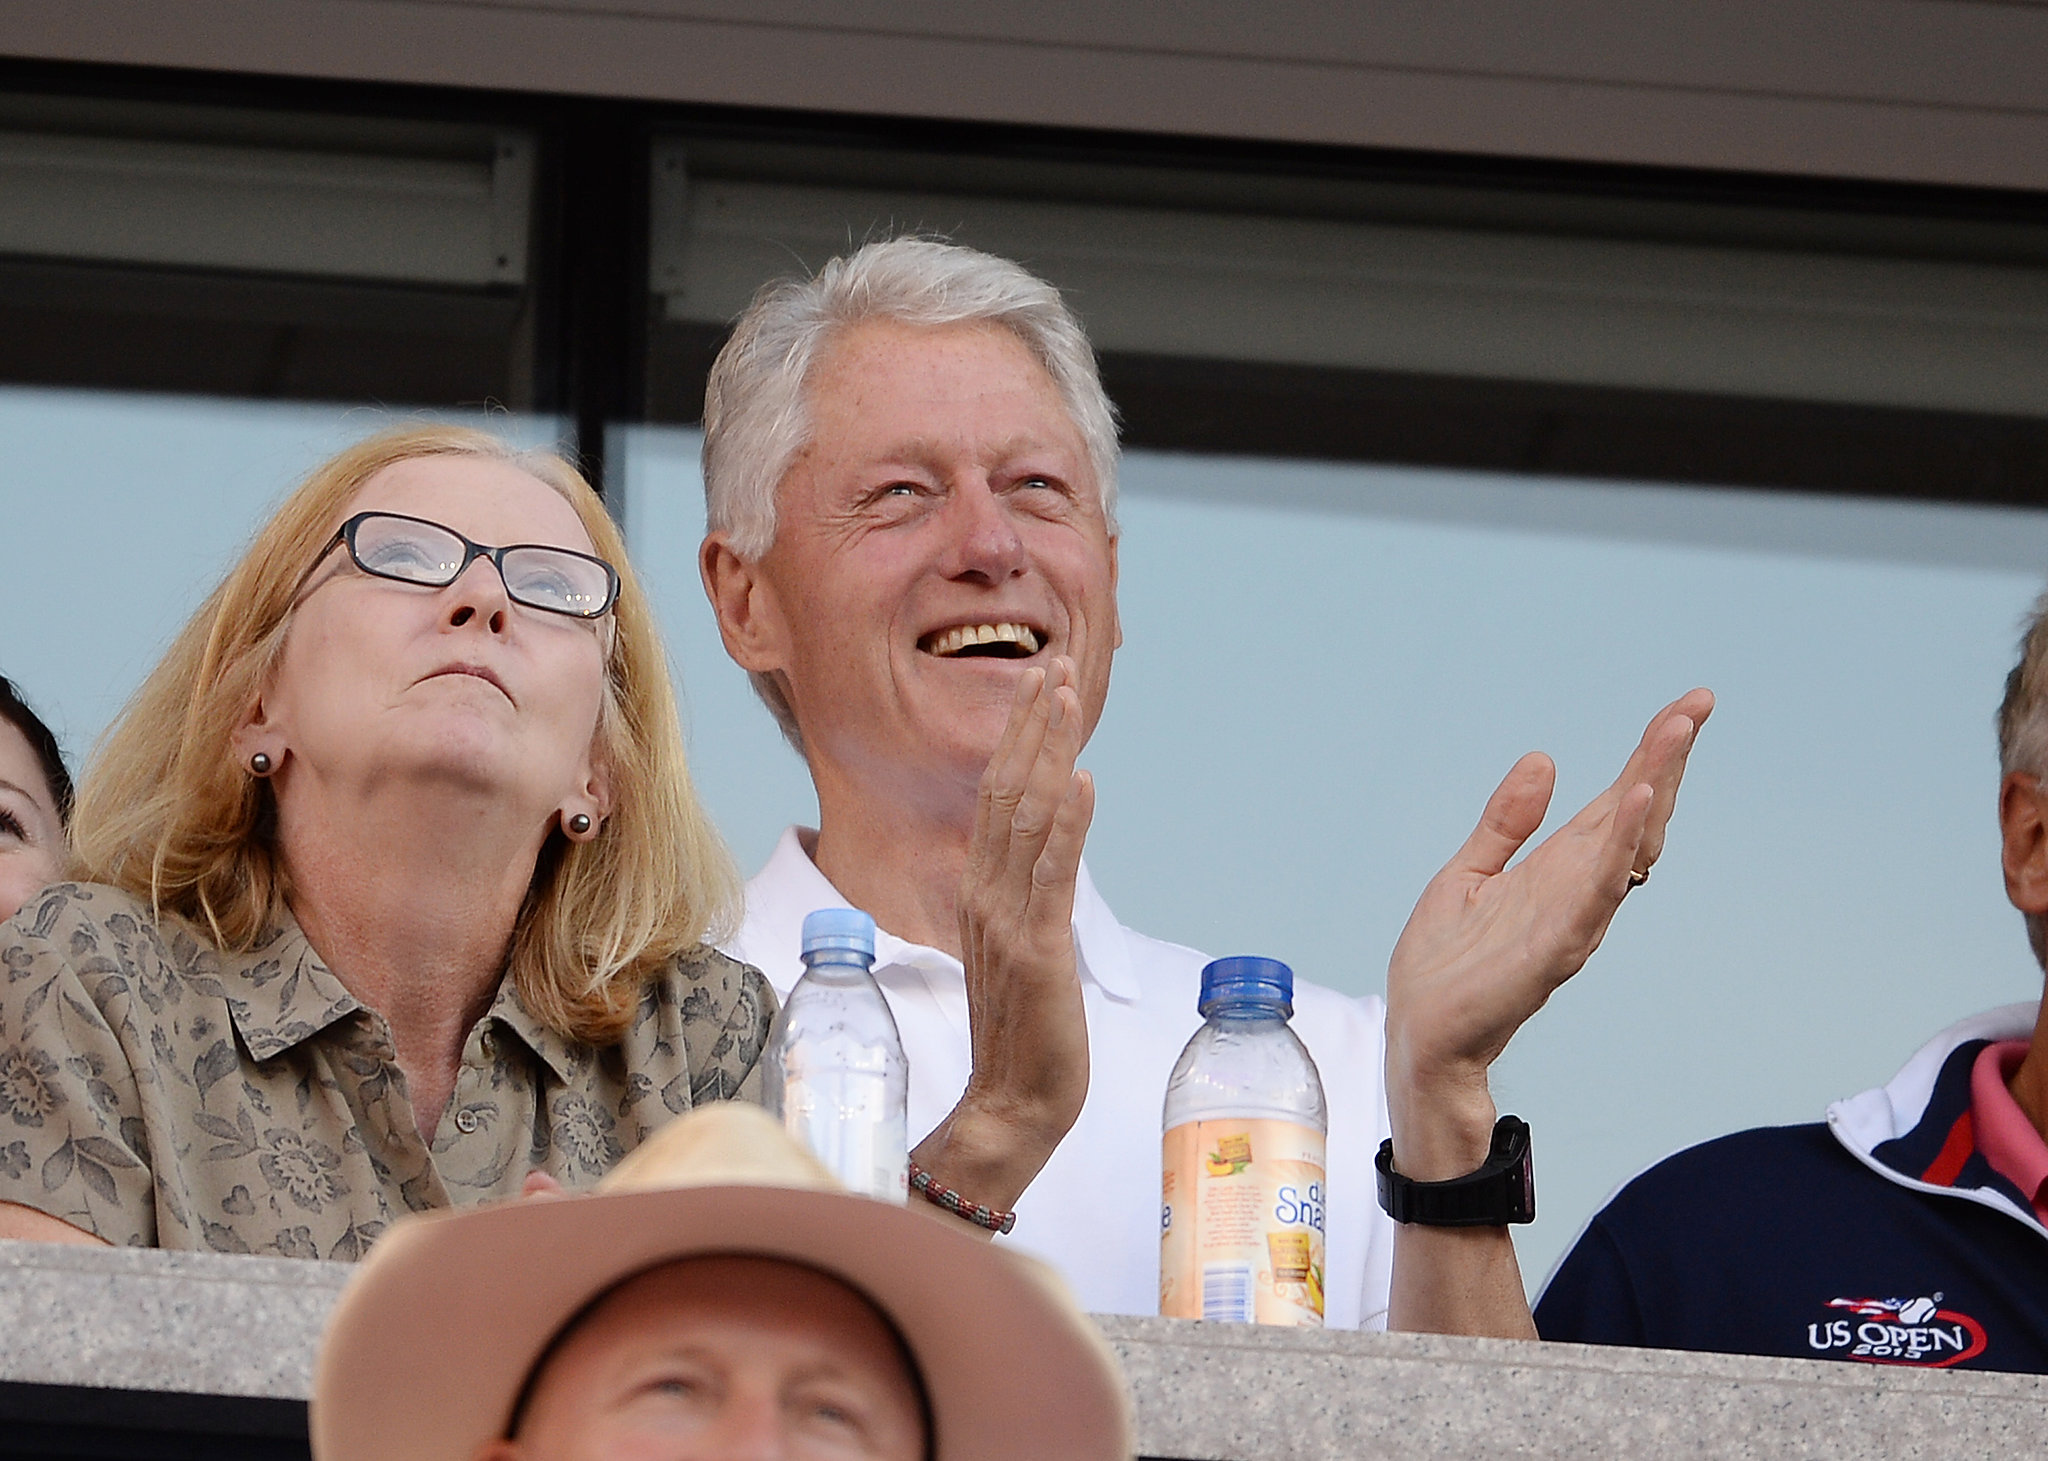 Bill Clinton had a good time watching the tennis.